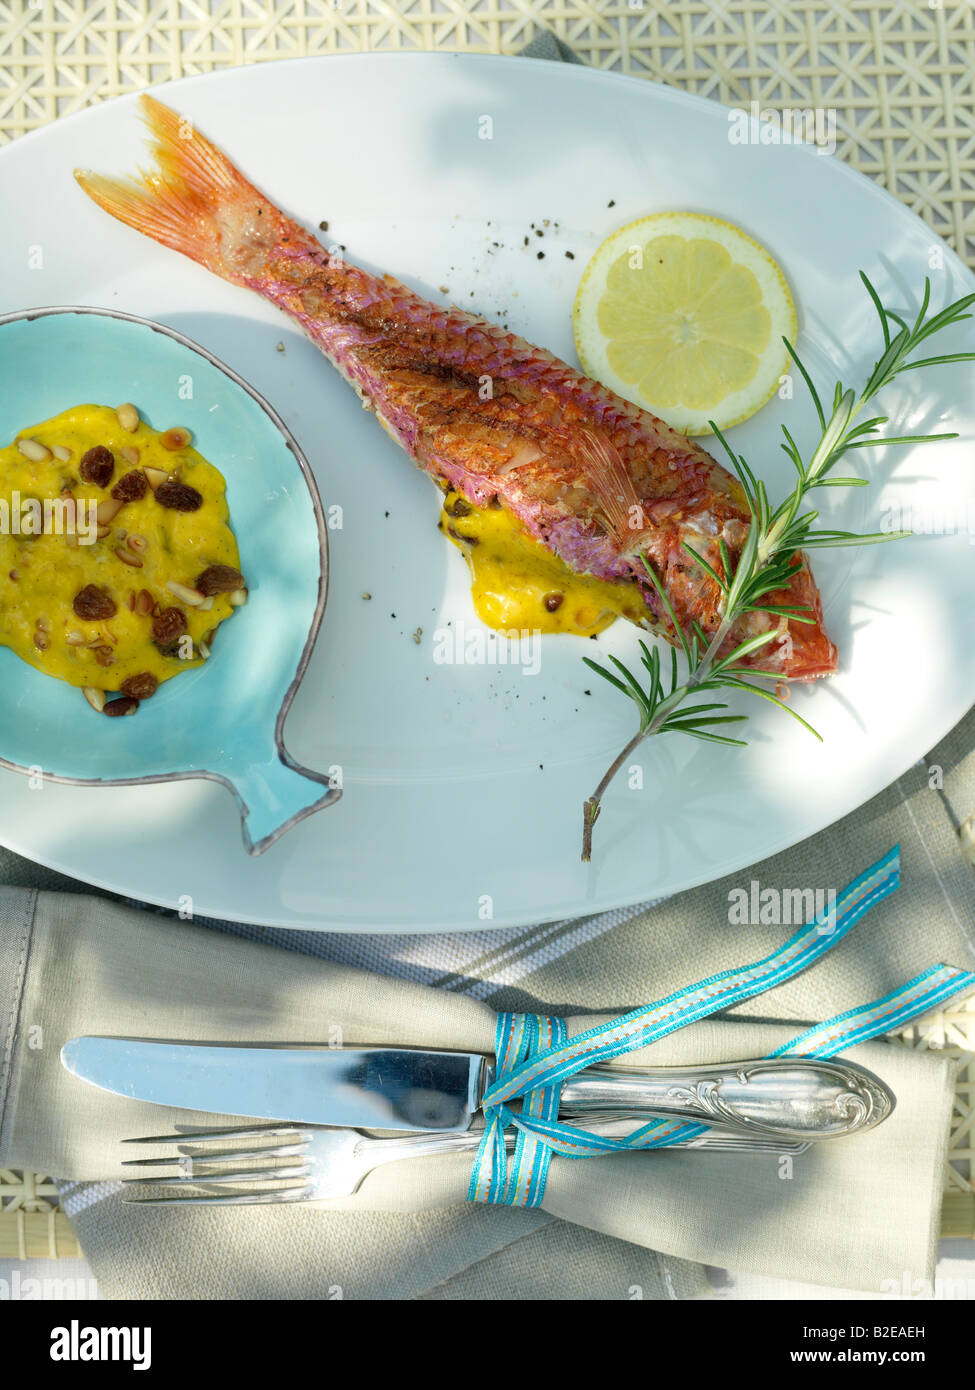 Fish and slice of lemon with savory sauce on plate - Stock Image